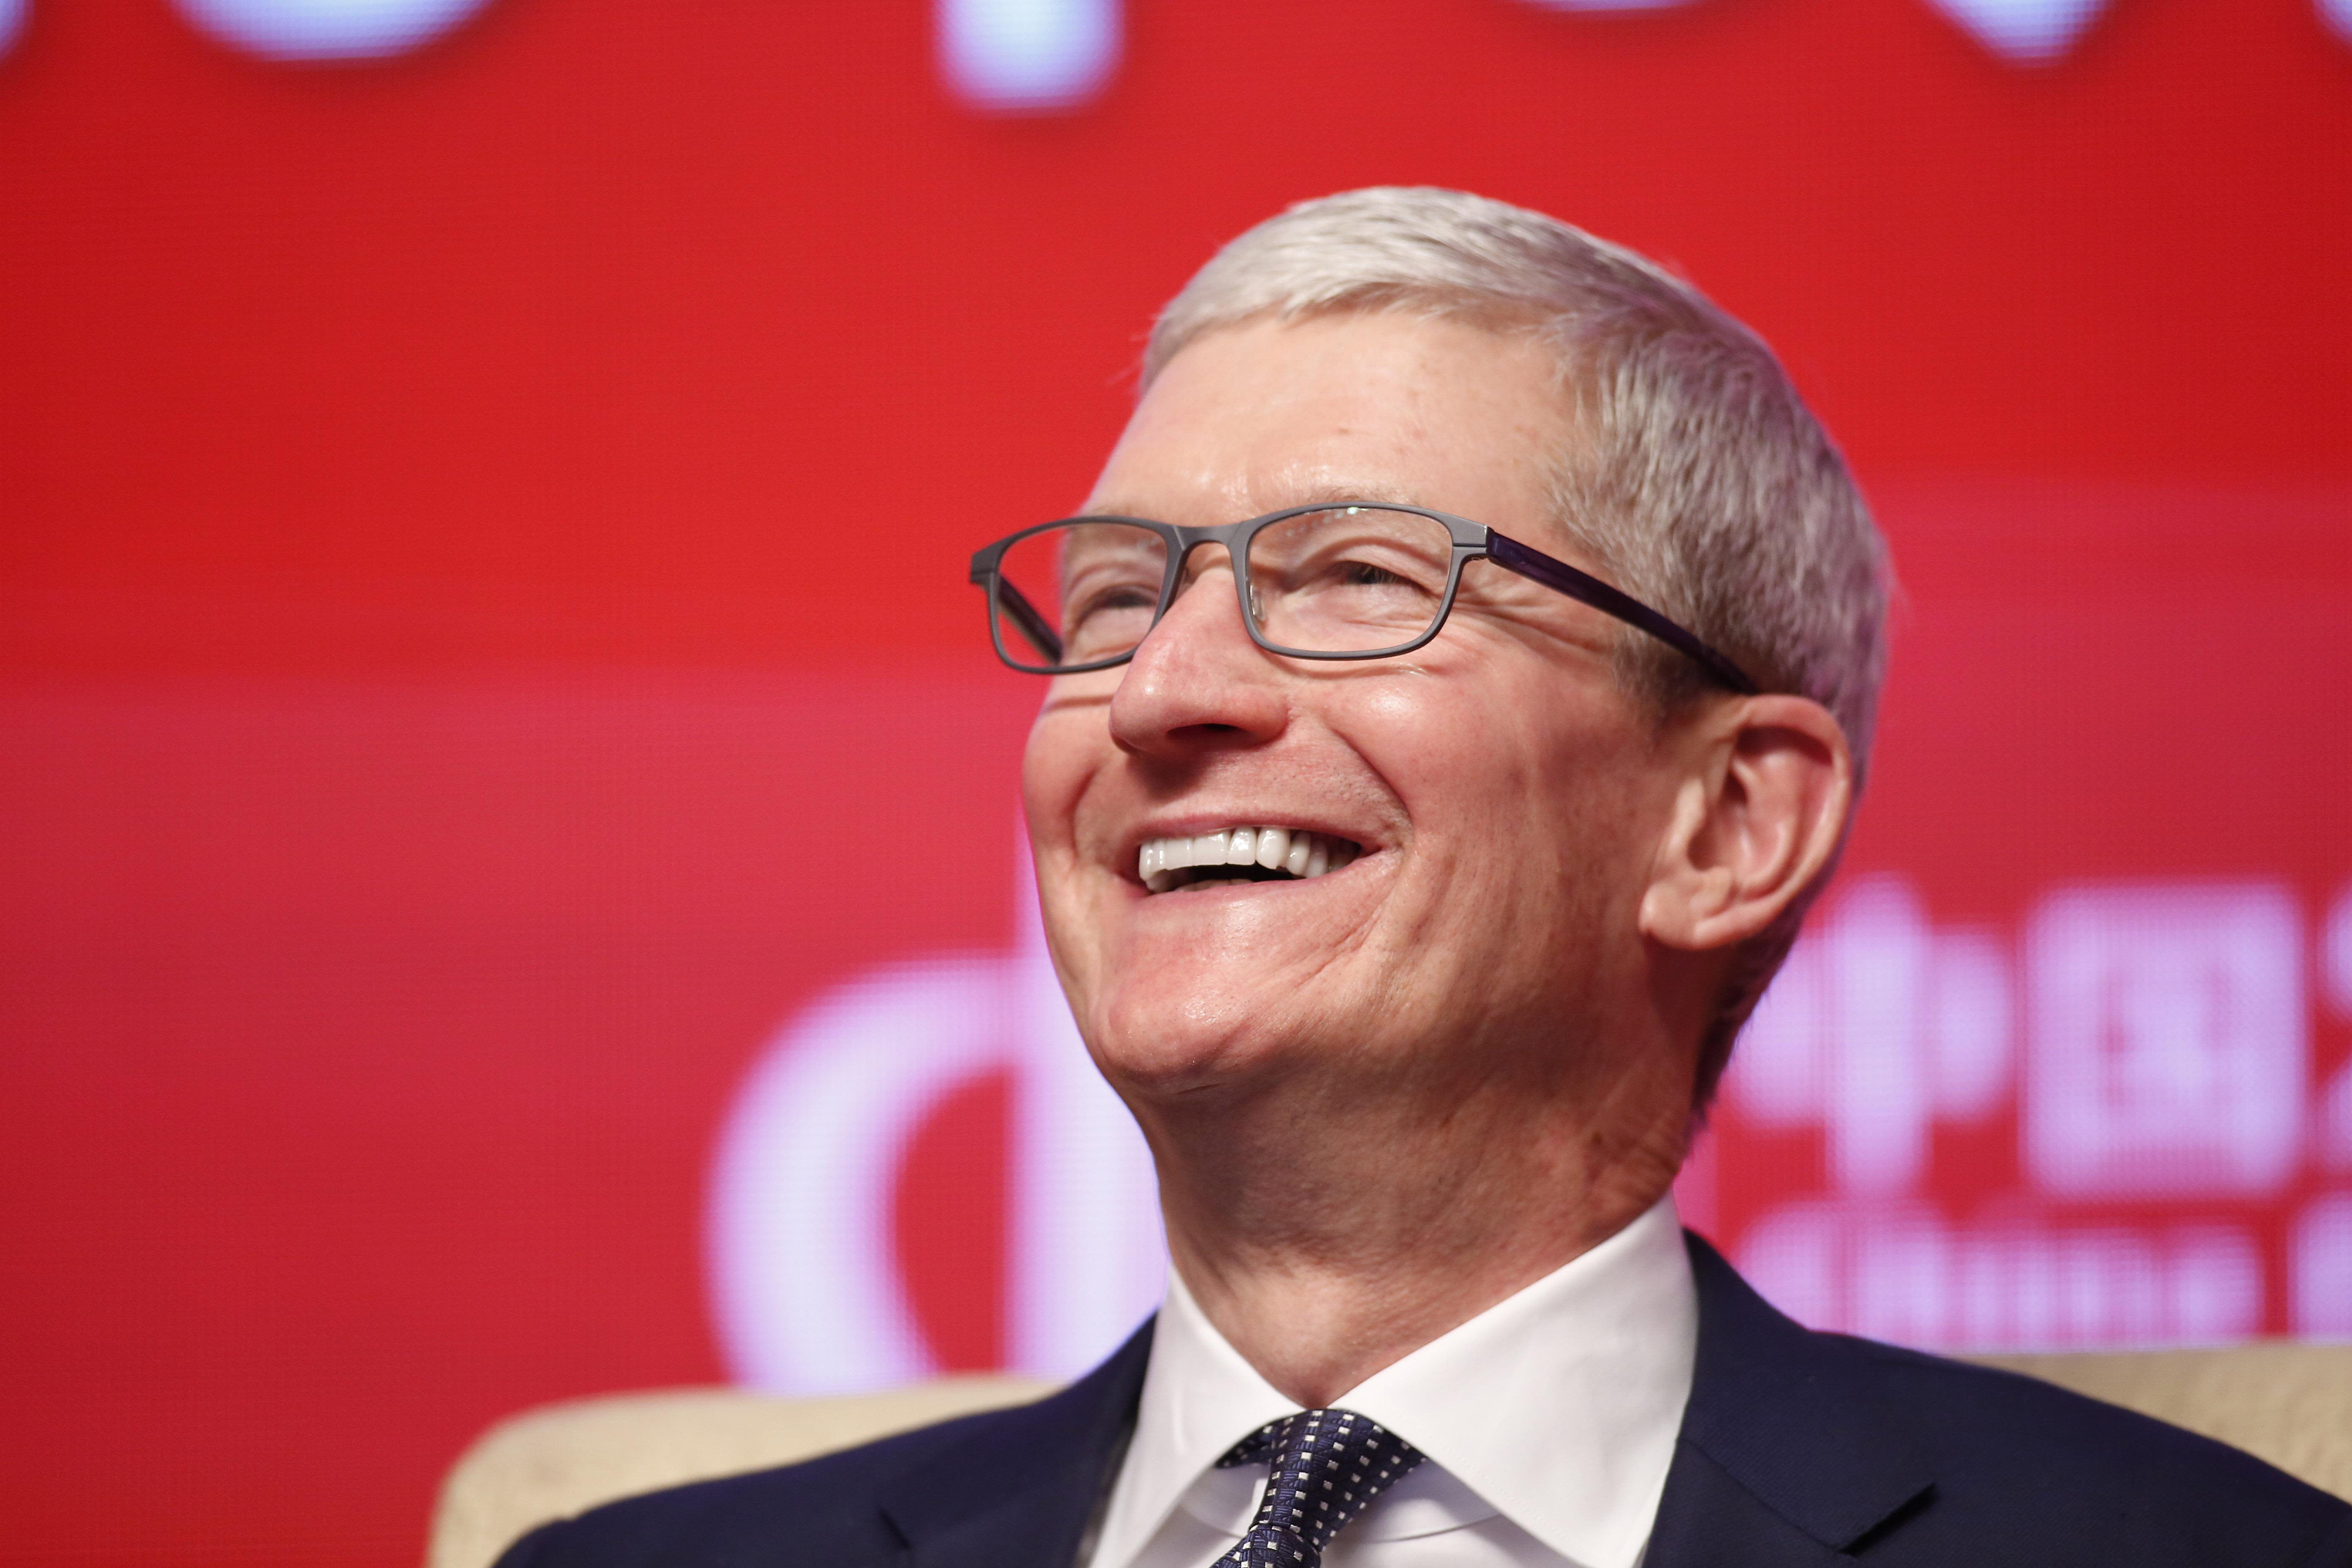 Here are the biggest analyst calls of the day: Apple, Zillow, AMC & more